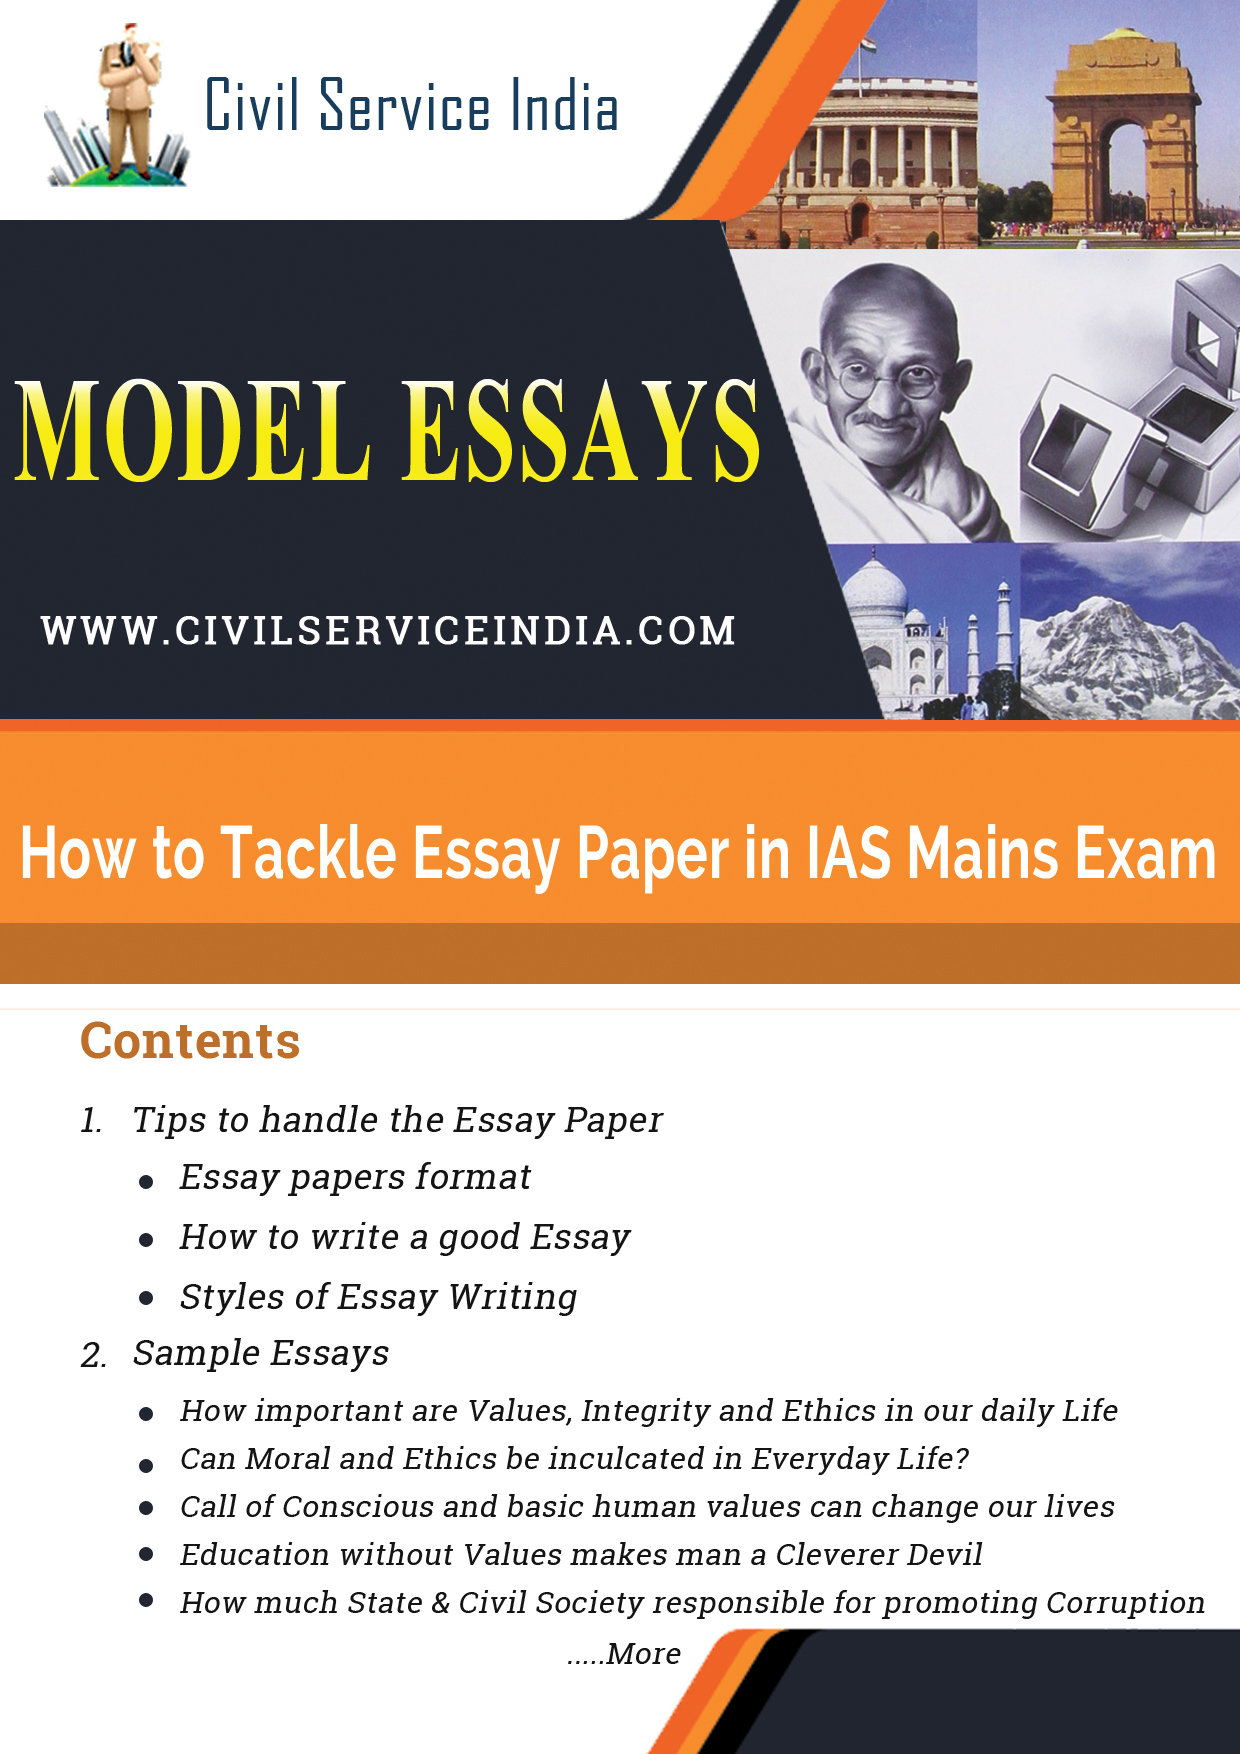 English essay writing service book pdf free download